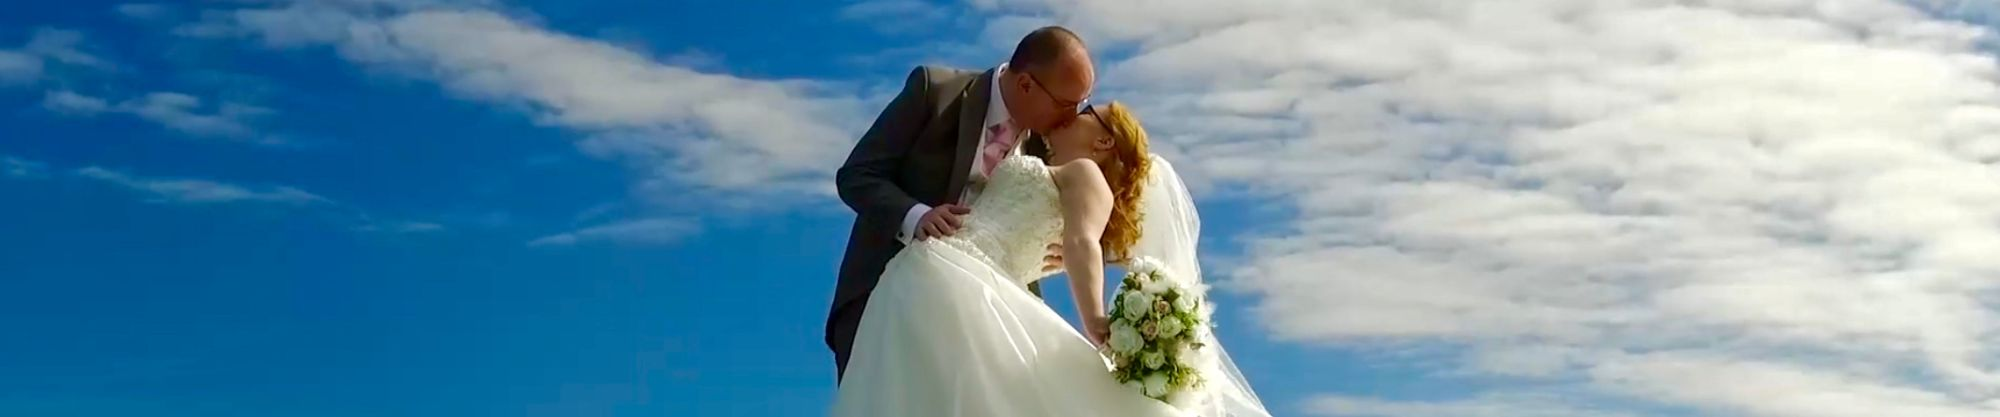 Bride and Groom on top of a hill